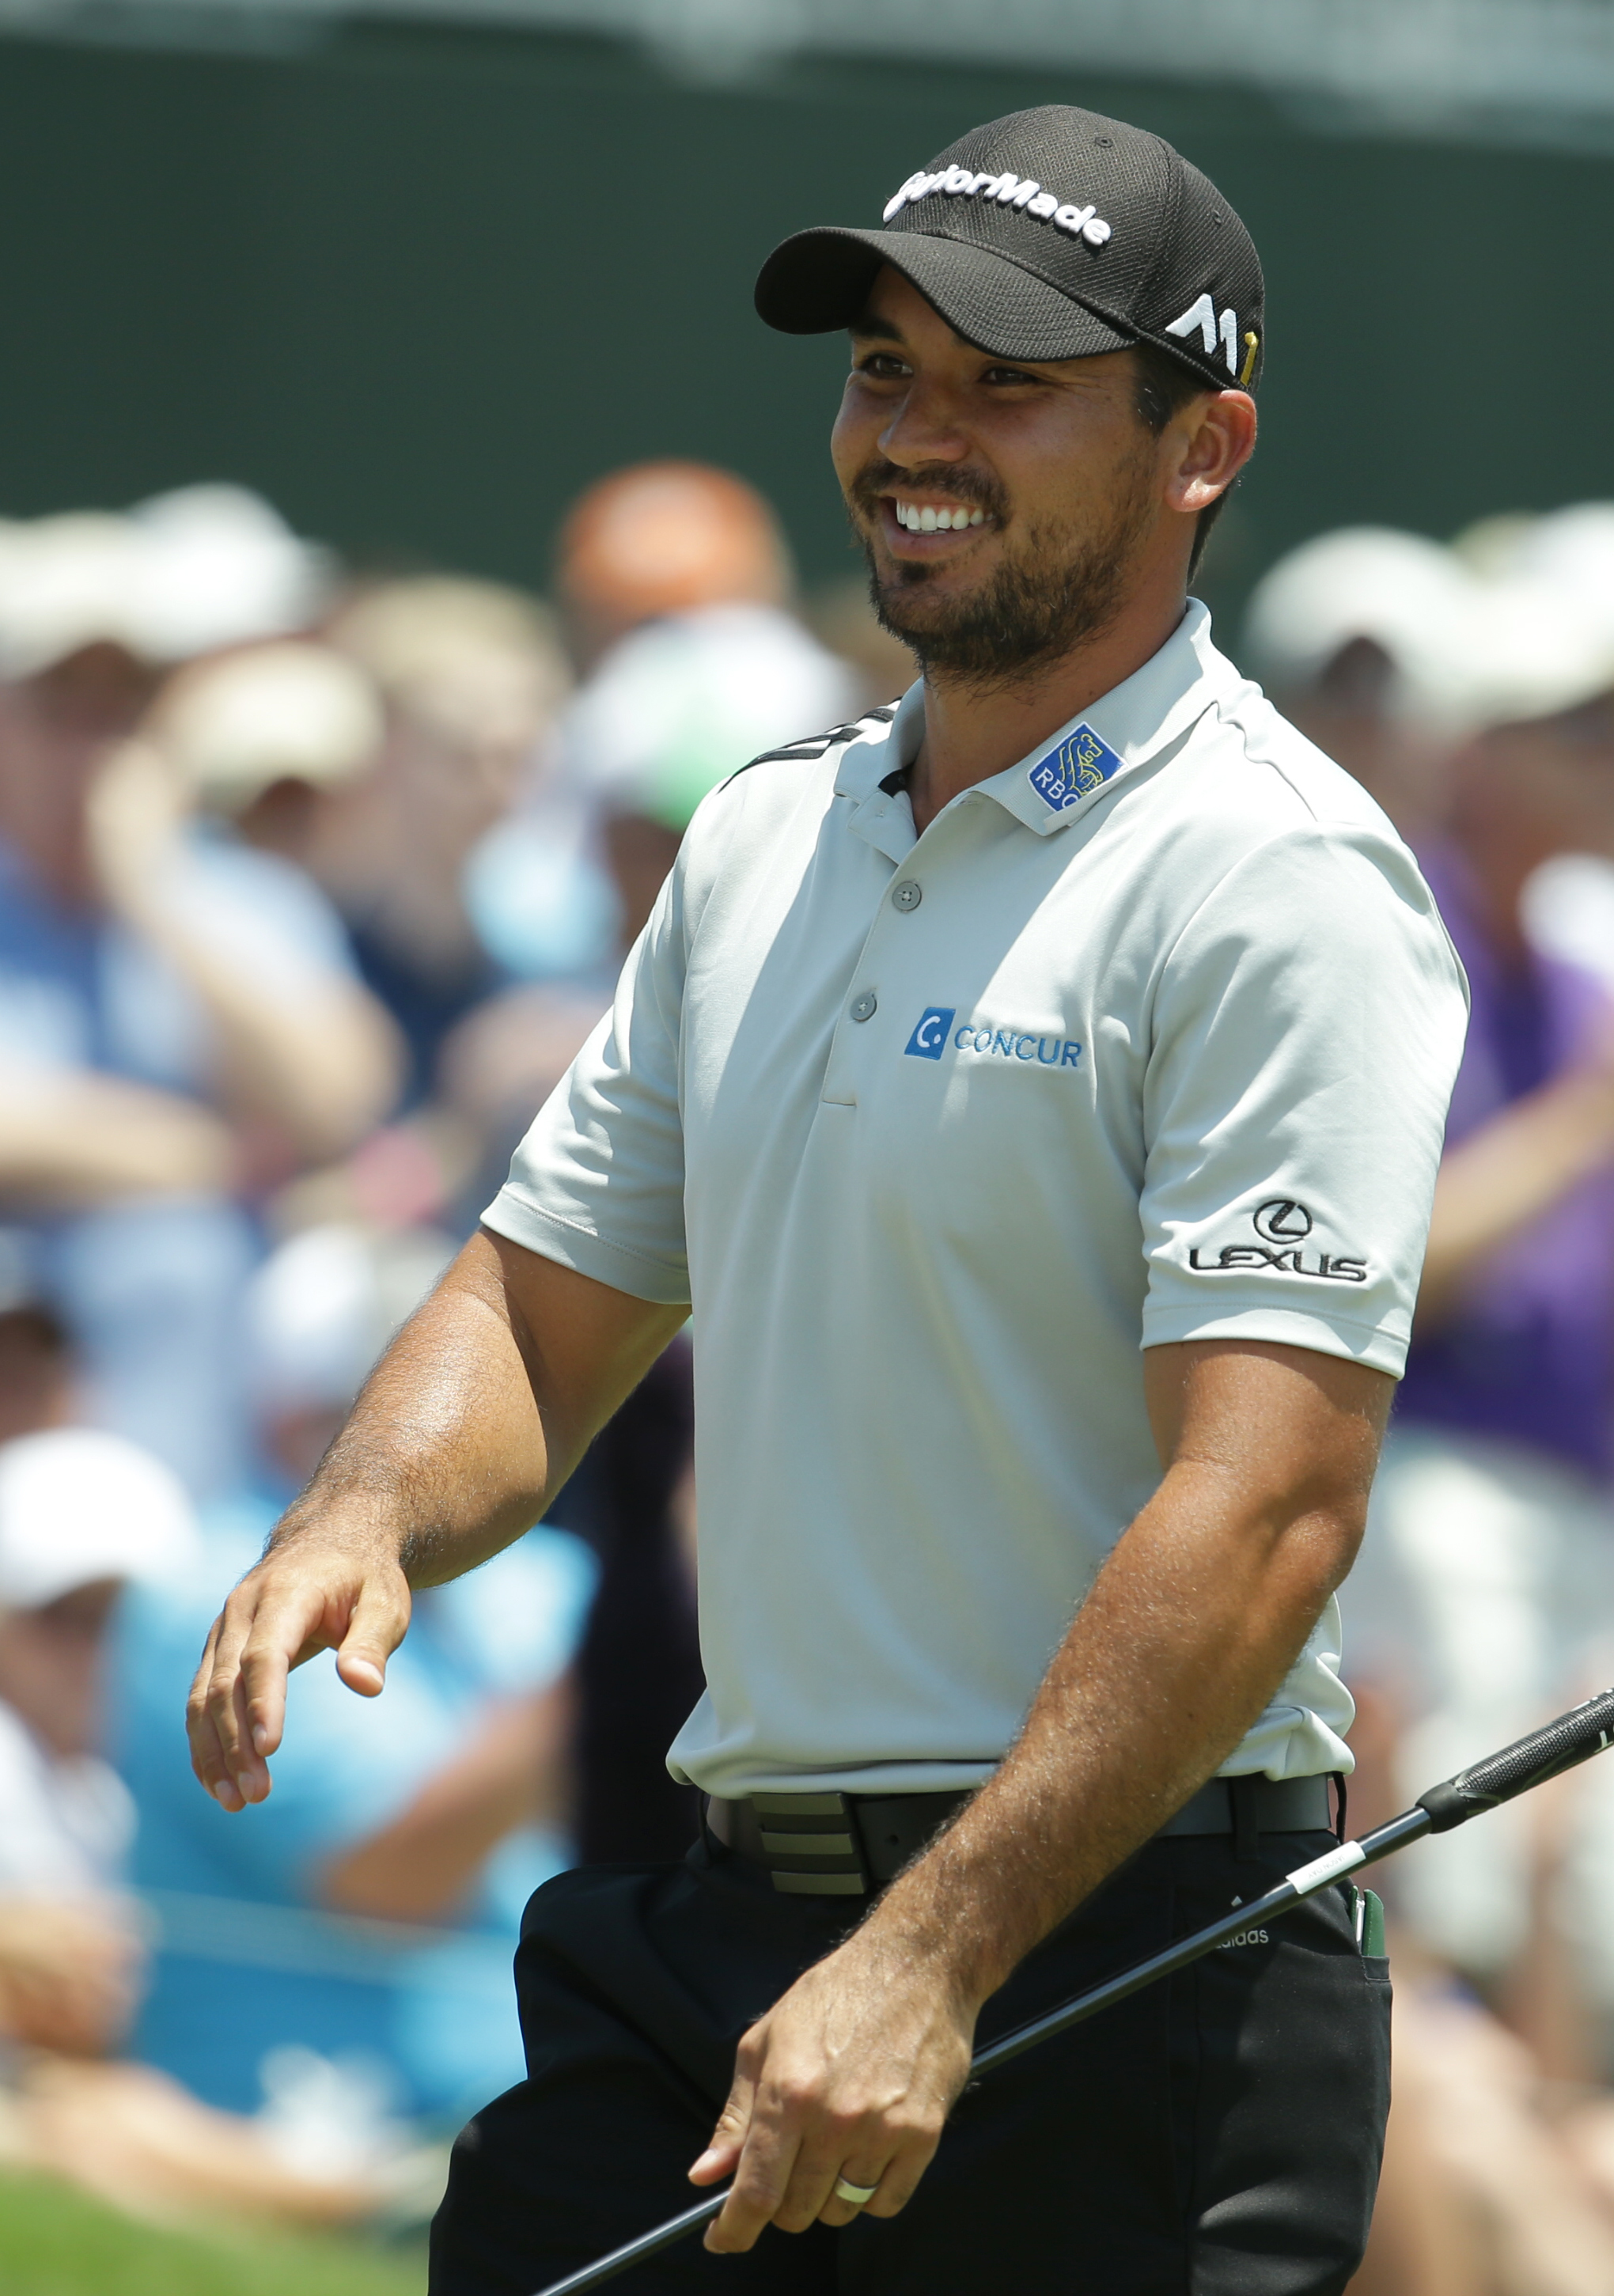 Jason Day is looking out for No. 1 | Pittsburgh Post-Gazette